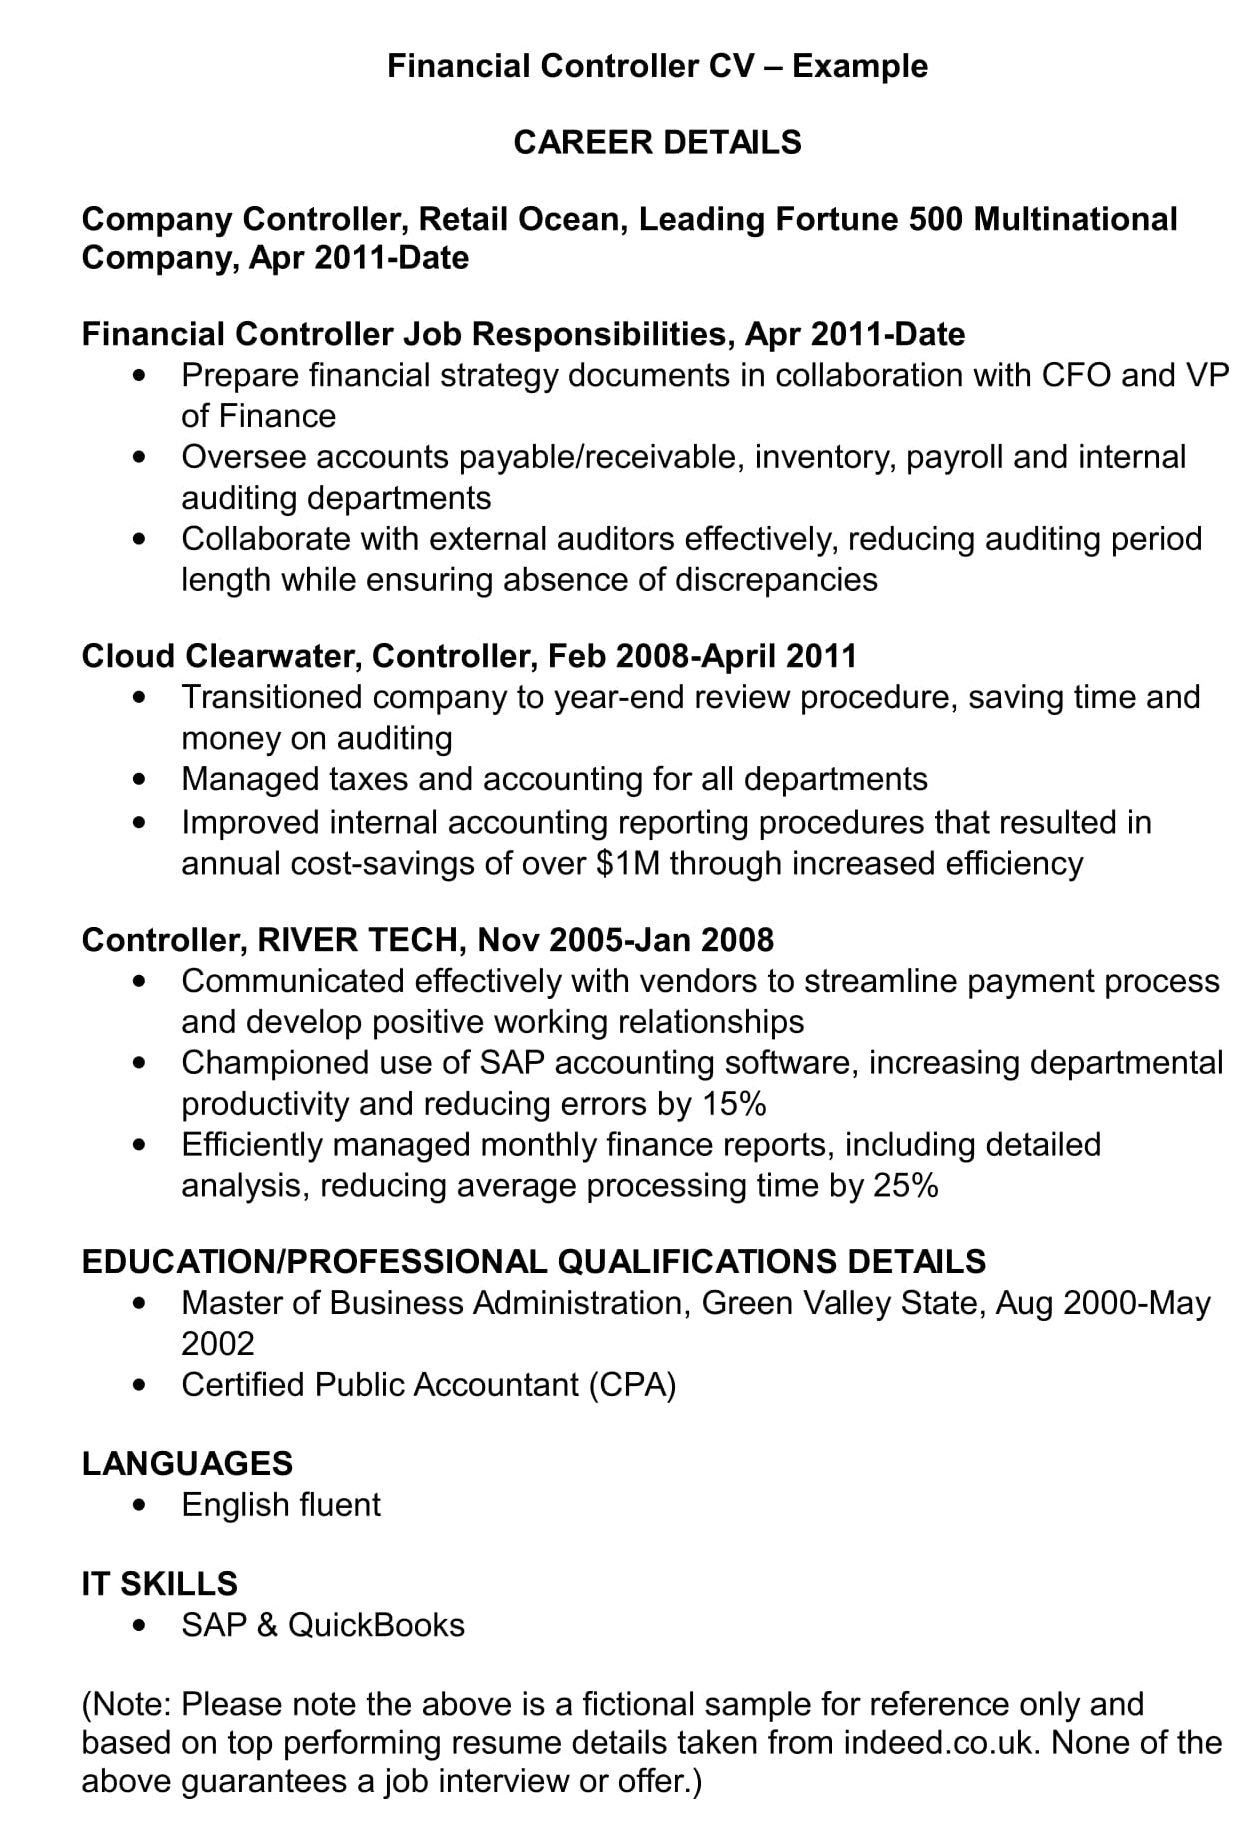 financial controller cv template and examples renaix resume word example writing services Resume Controller Resume Template Word